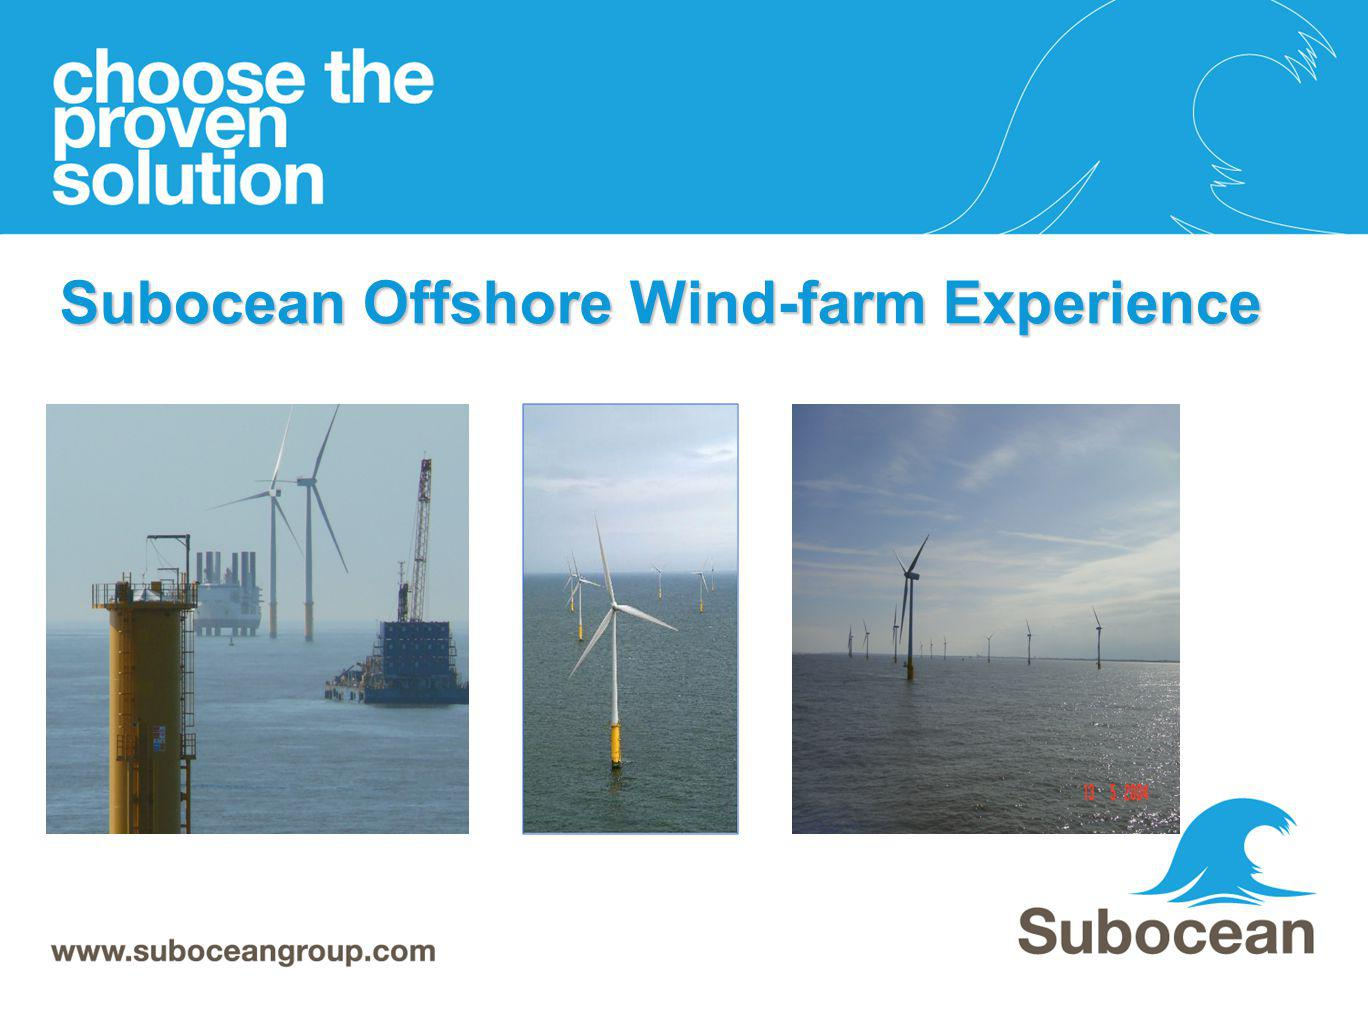 Subocean Offshore Wind-farm Experience